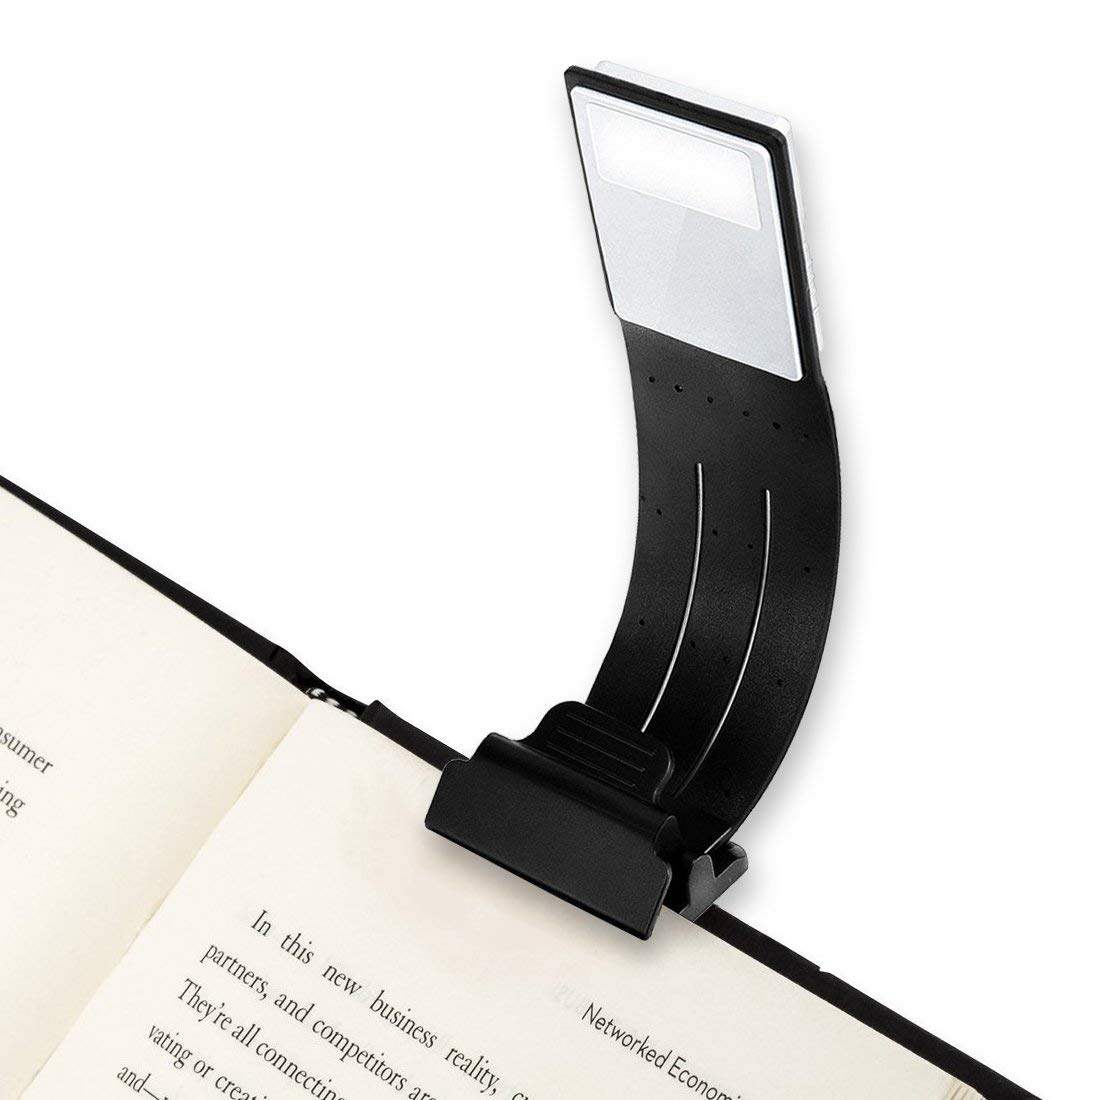 Night Book Light – J-Deal Portable Clip Reading Light, Brightness Flexible LED Reading Lamp, Eye Protection, USB Rechargeable, Bookmarks Lights Kindle, Studio Lighting Book, Reading in Bed